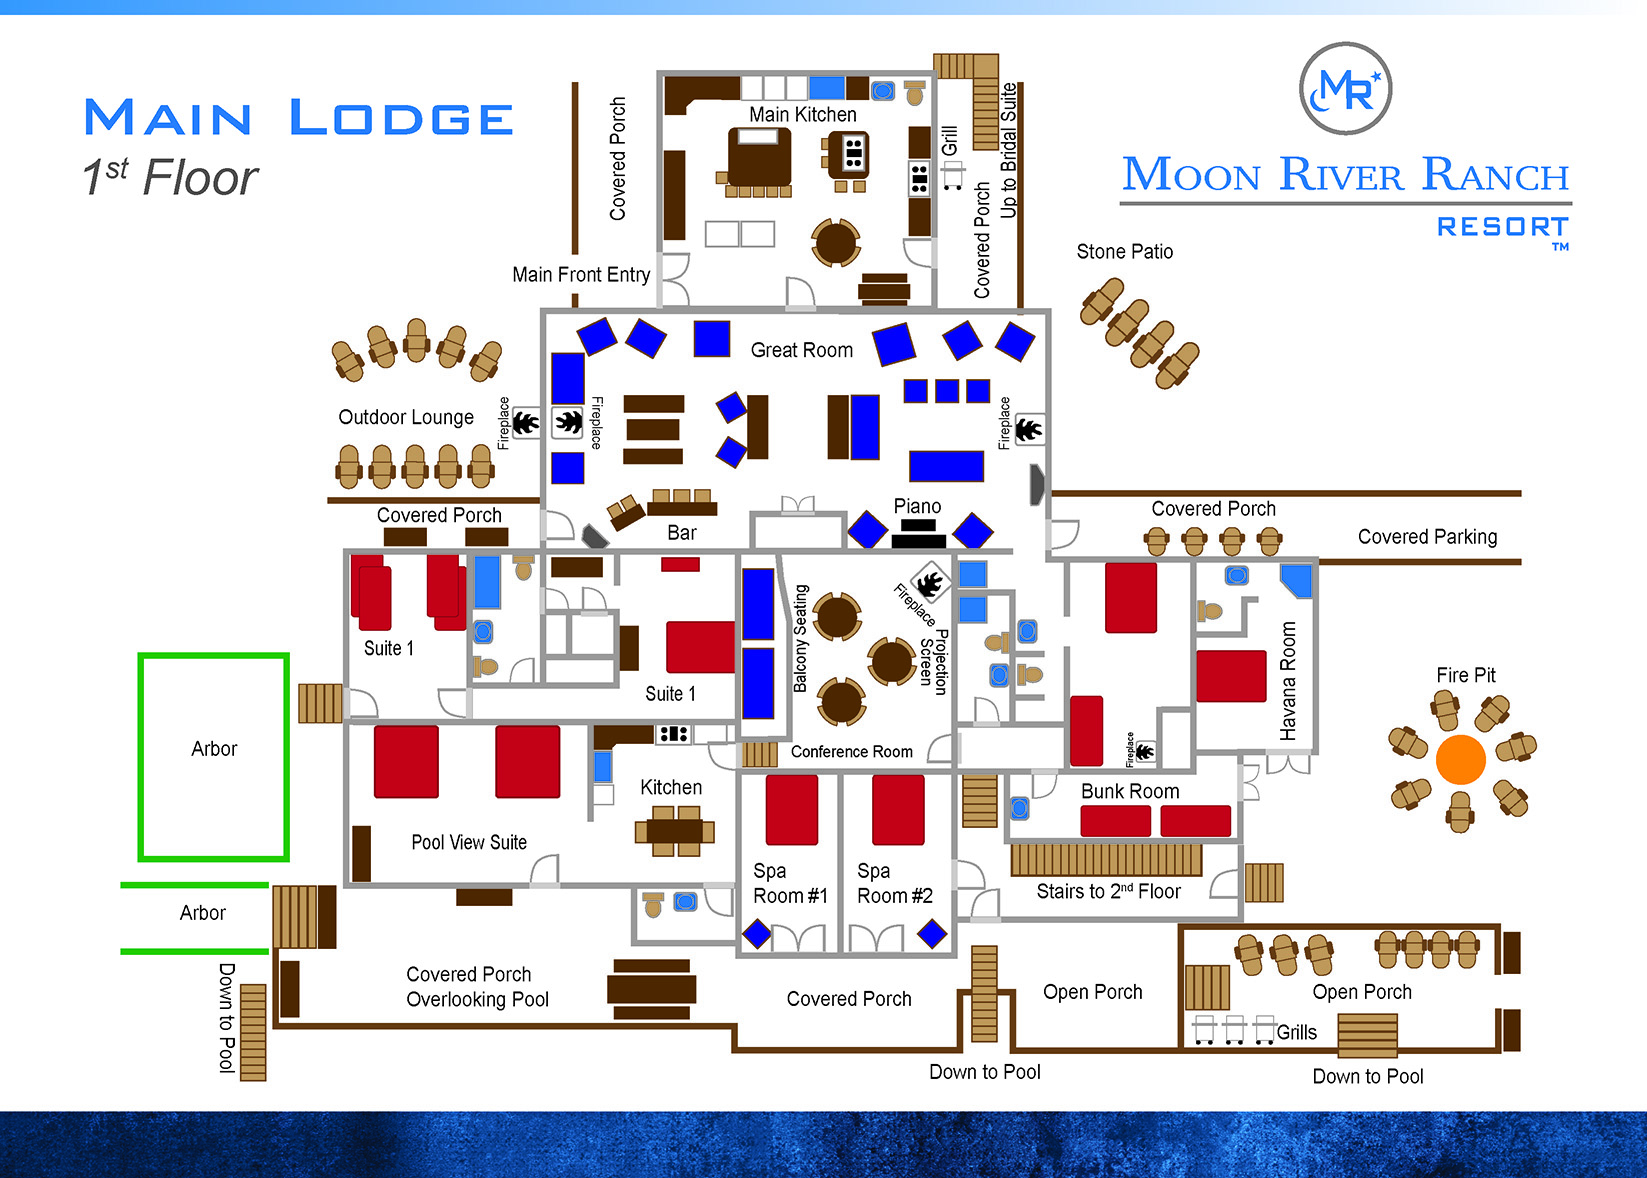 main lodge first floor plans